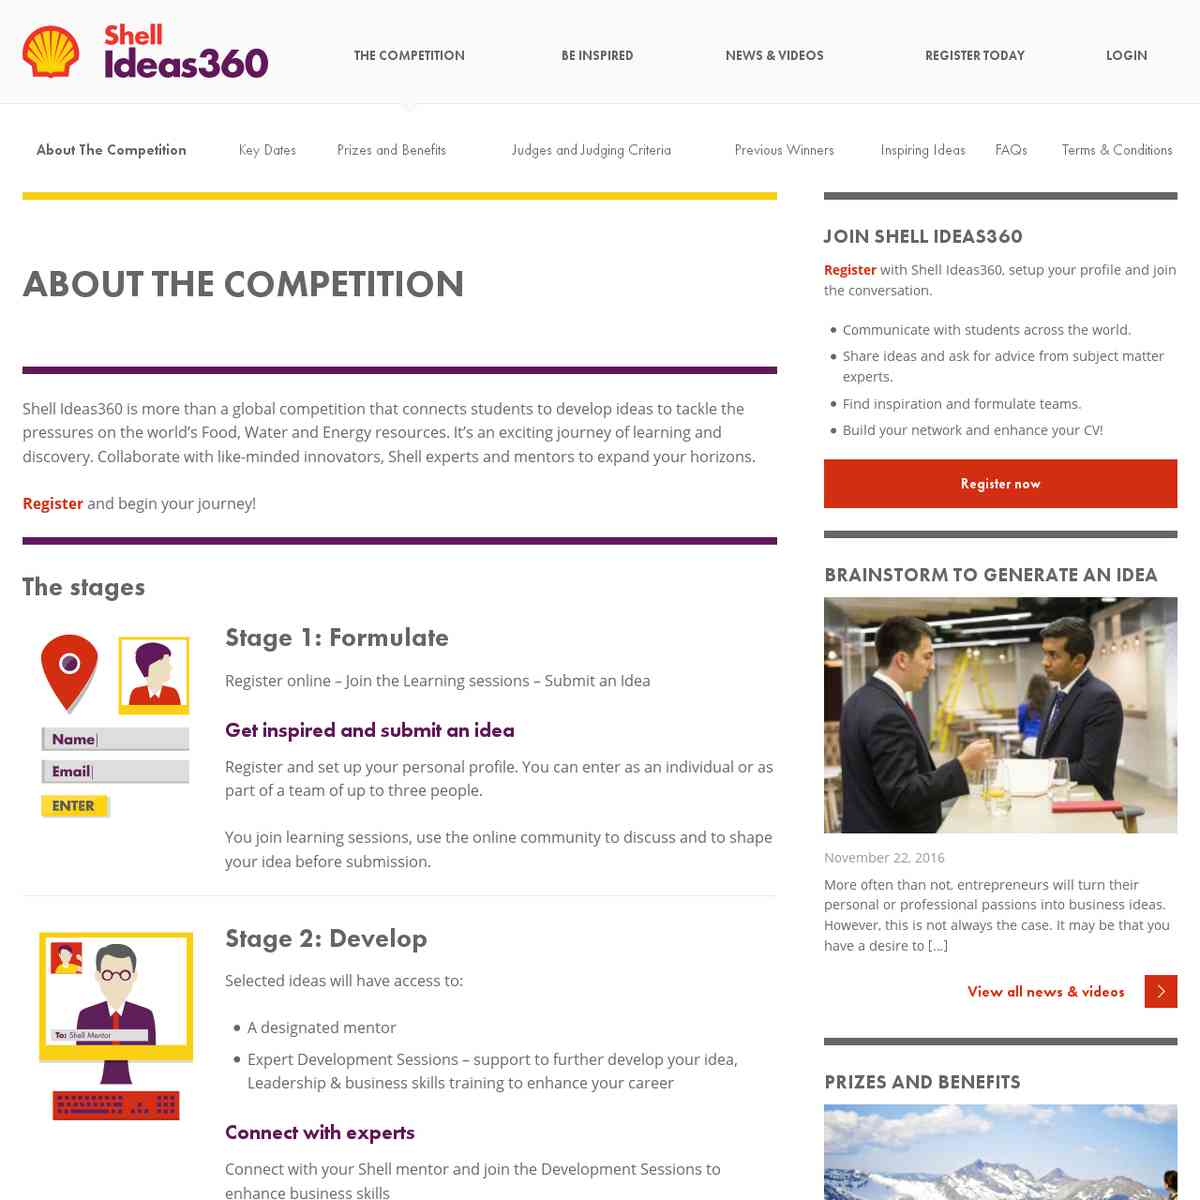 About The Competition - Shell Ideas360